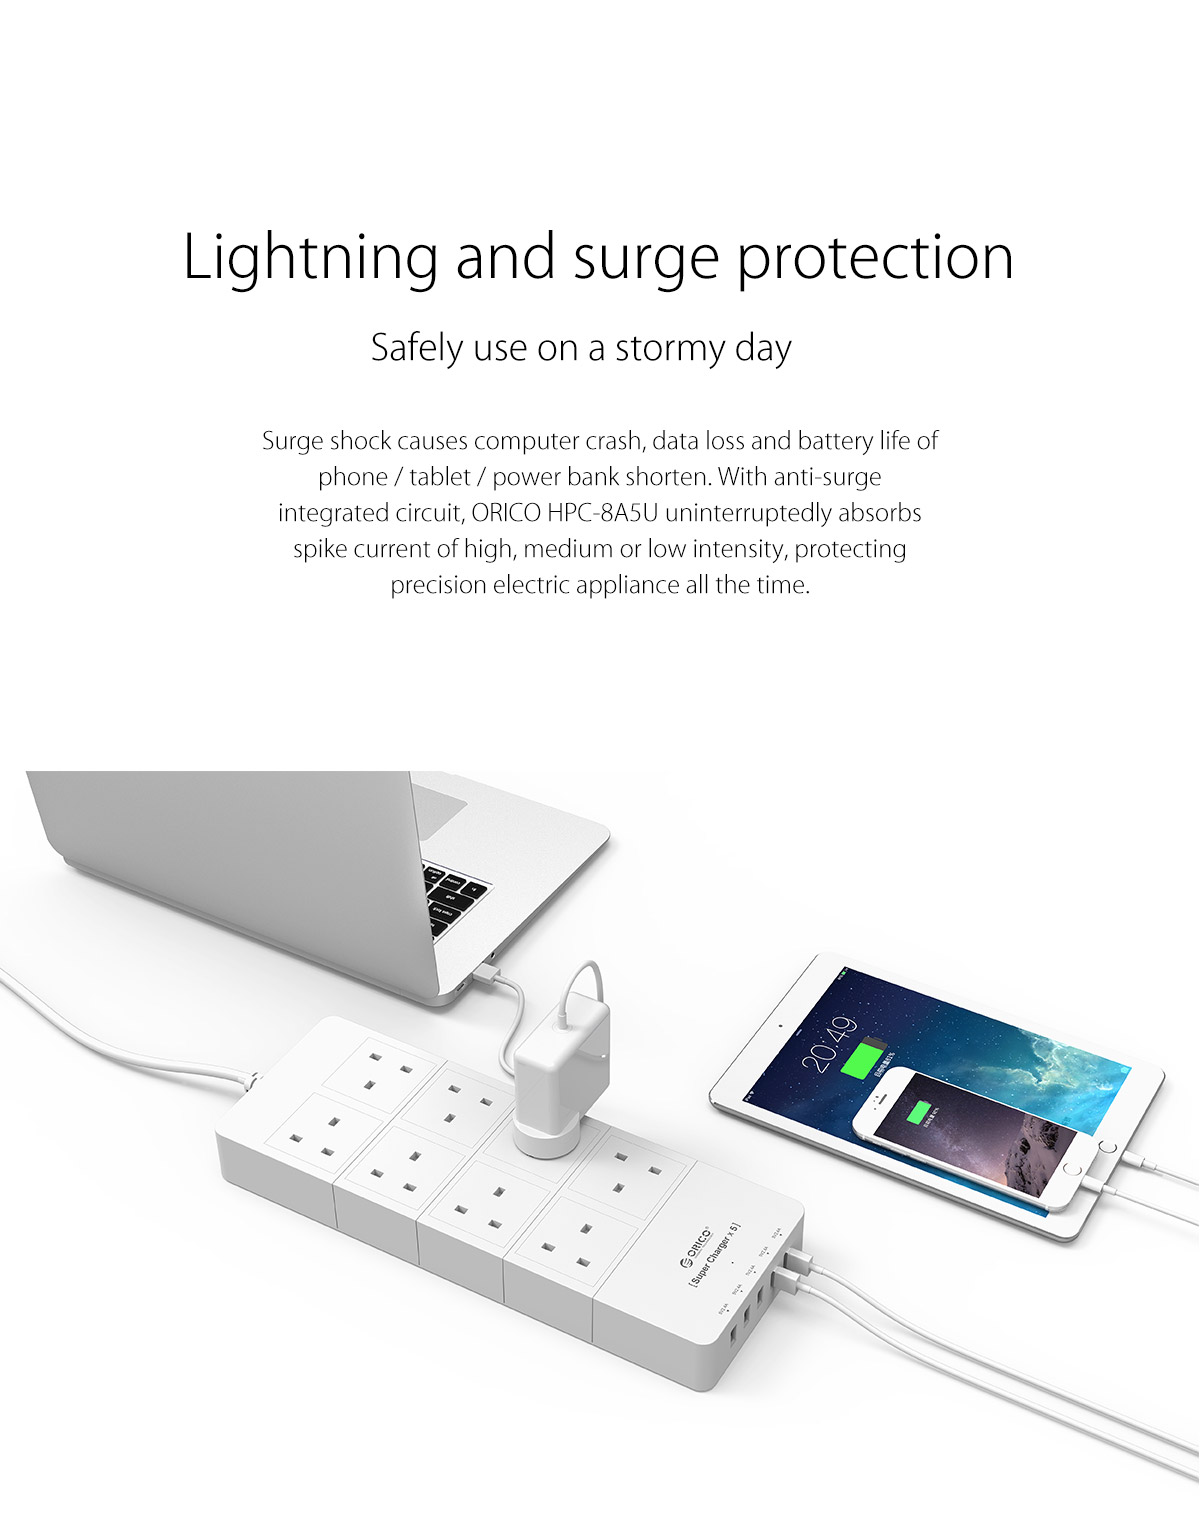 lingtning and surge protection